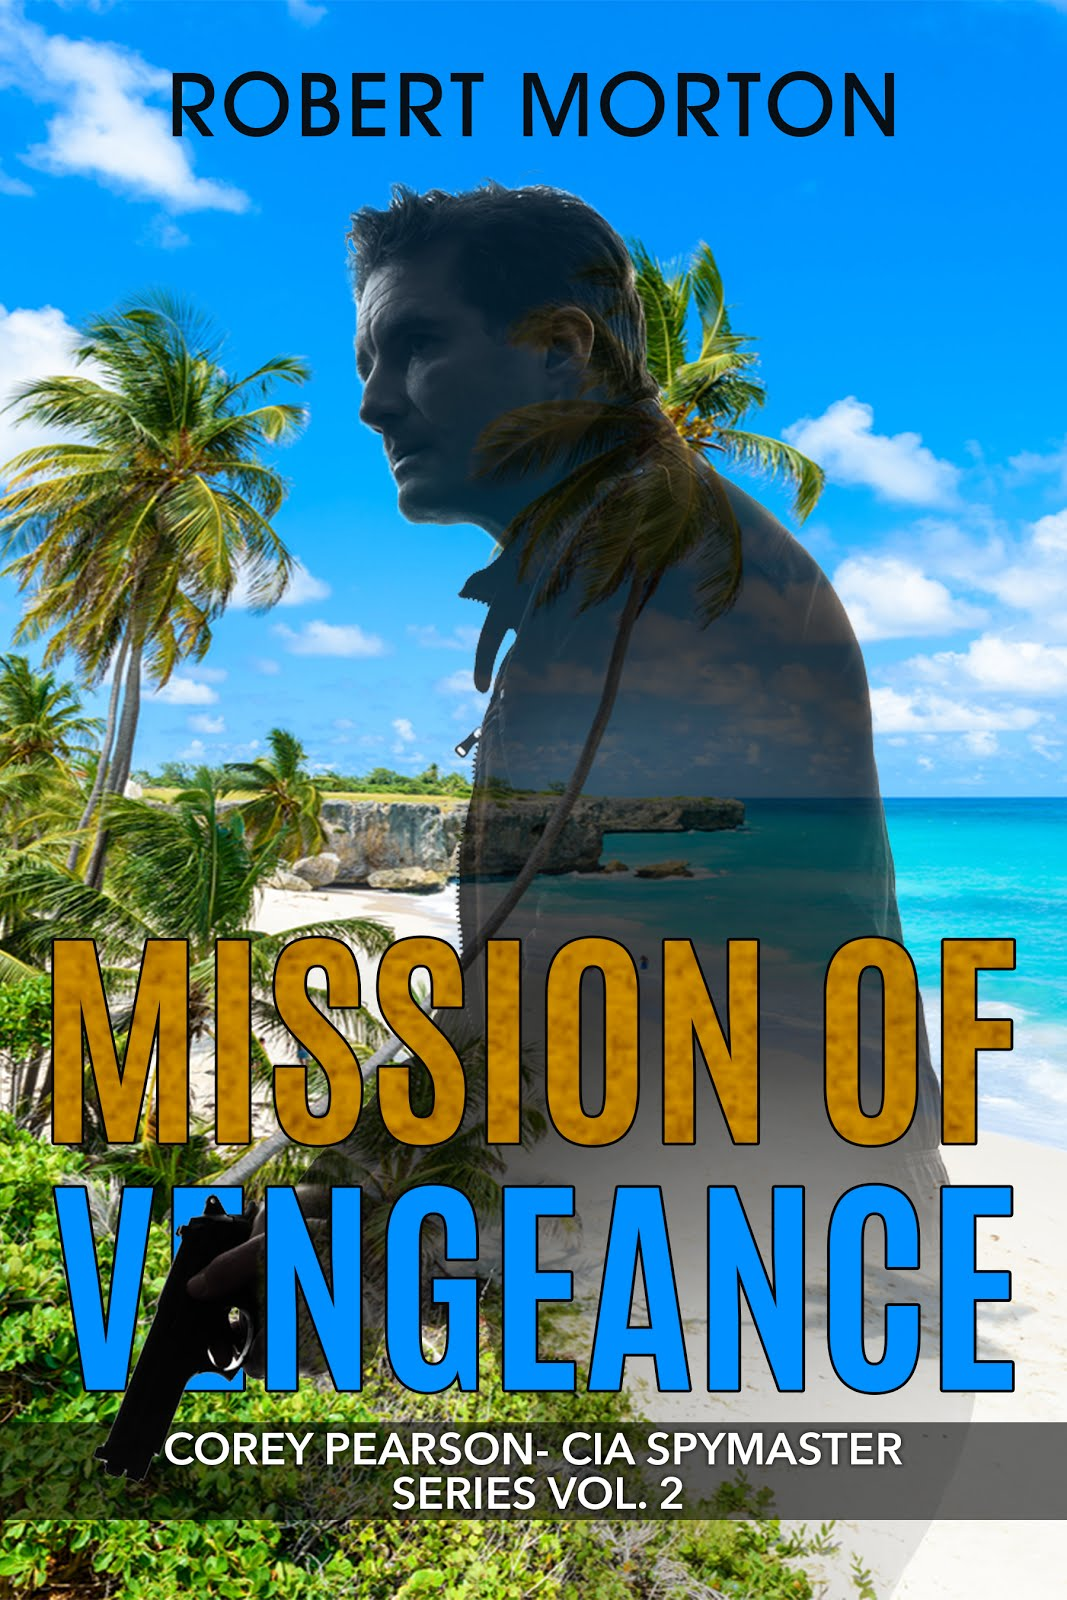 Get MISSION OF VENGEANCE- A Corey Pearson CIA Spy thriller! vol. 2